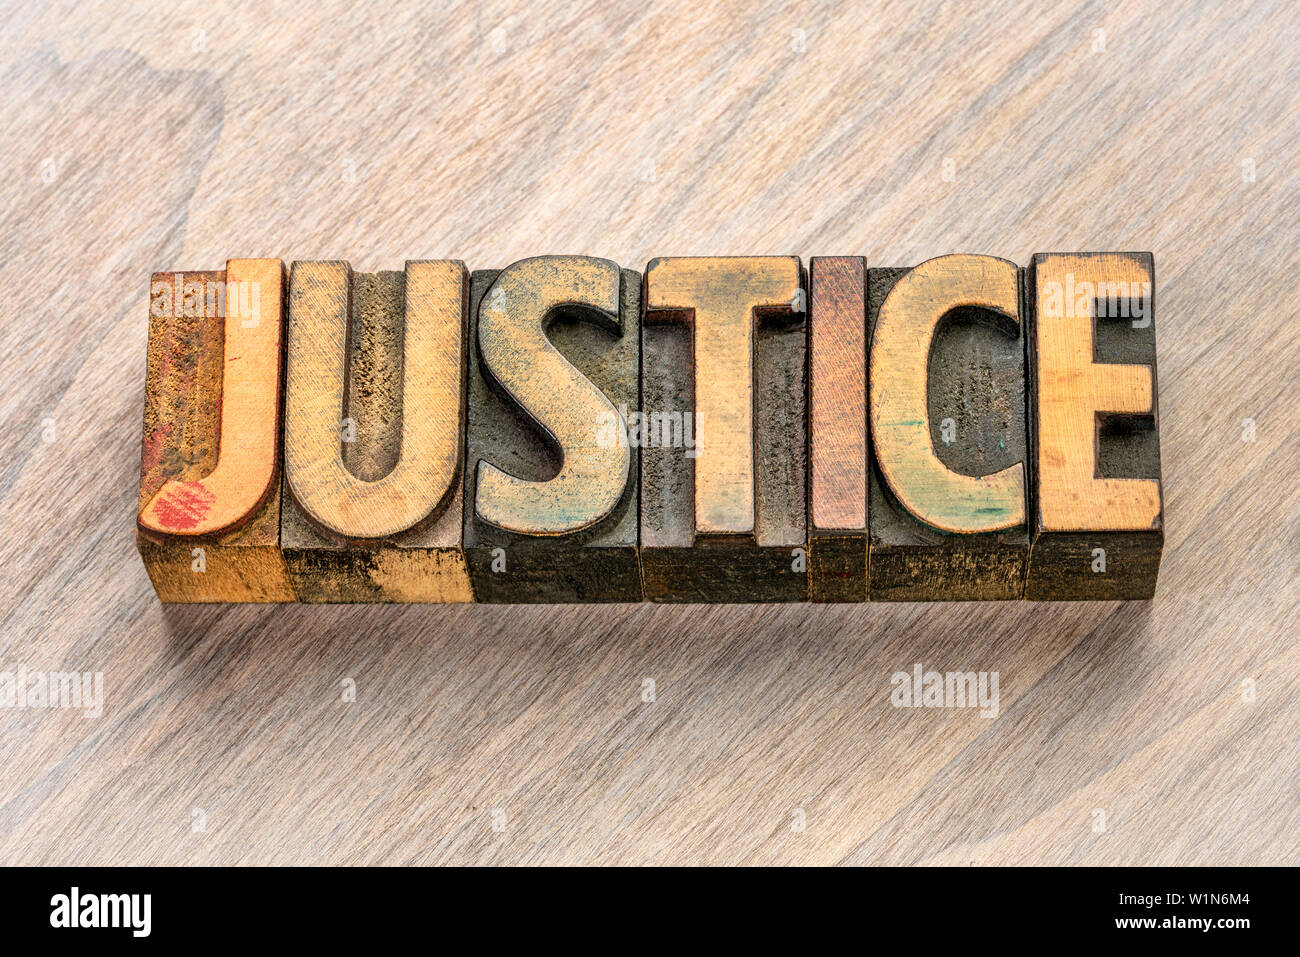 justice word abstract in vintage letterpress wood type printing blocks - Stock Image